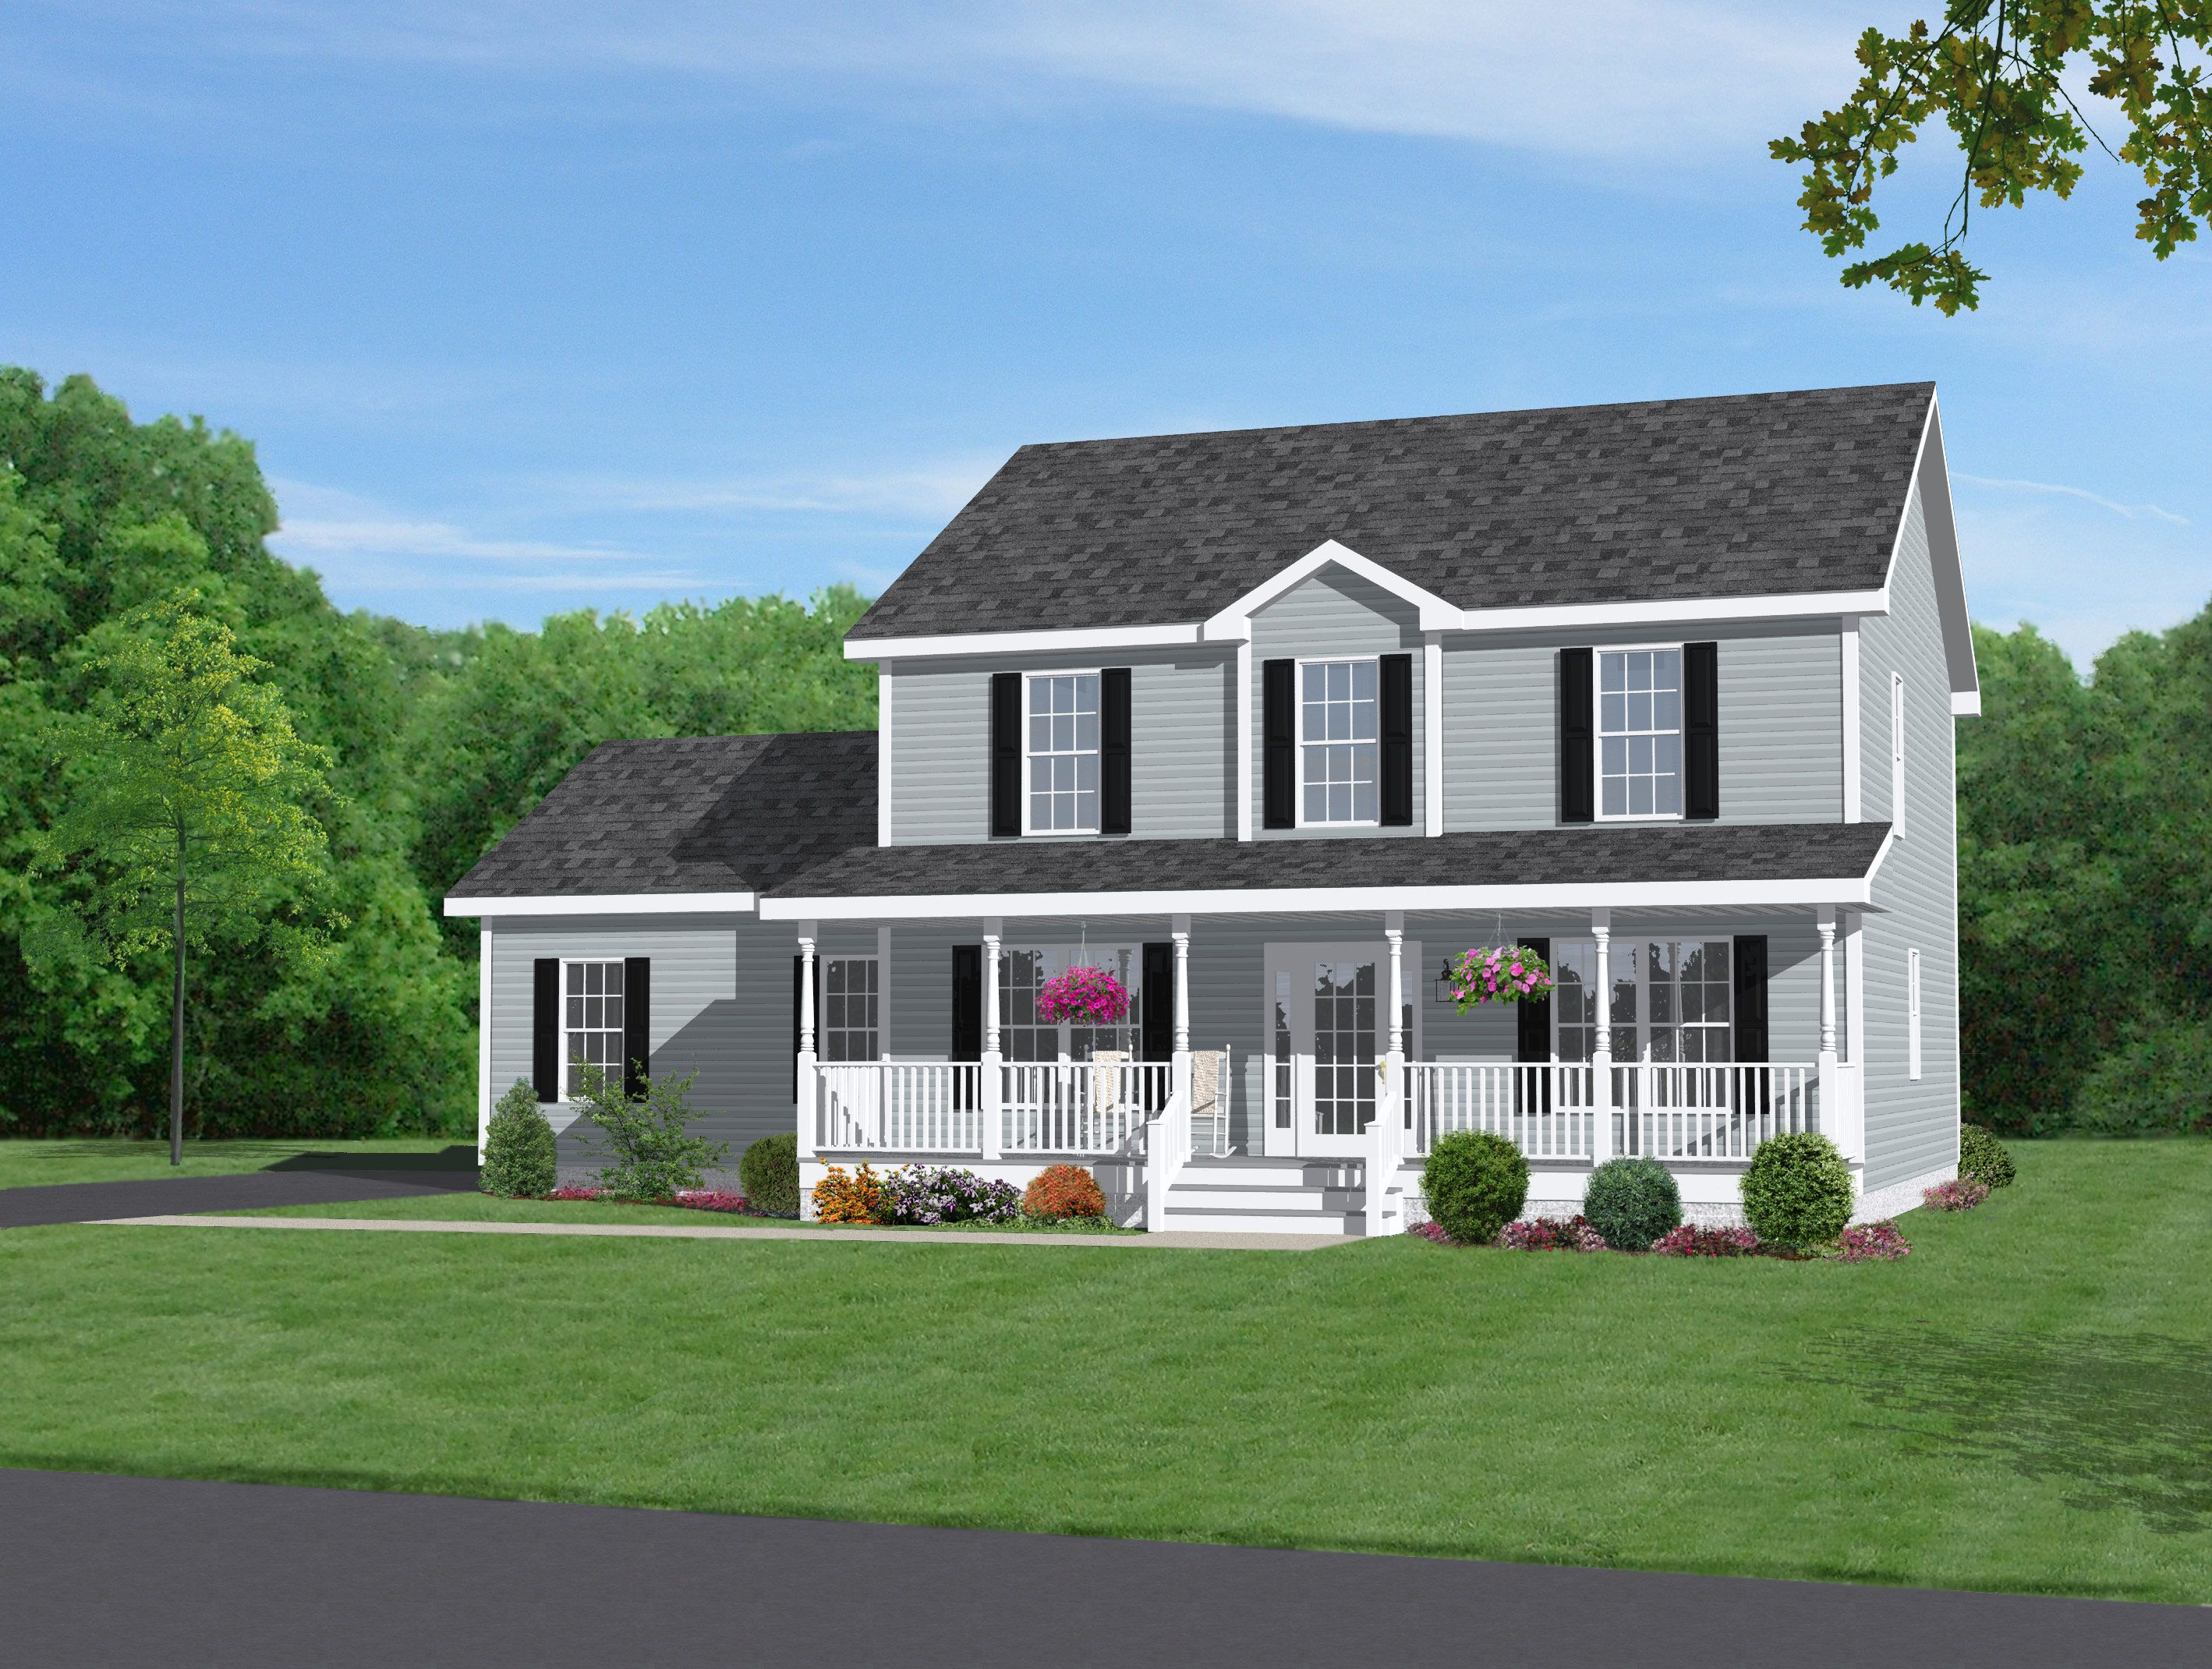 Two story home with beautiful front porch dream home for Small two story house plans with garage